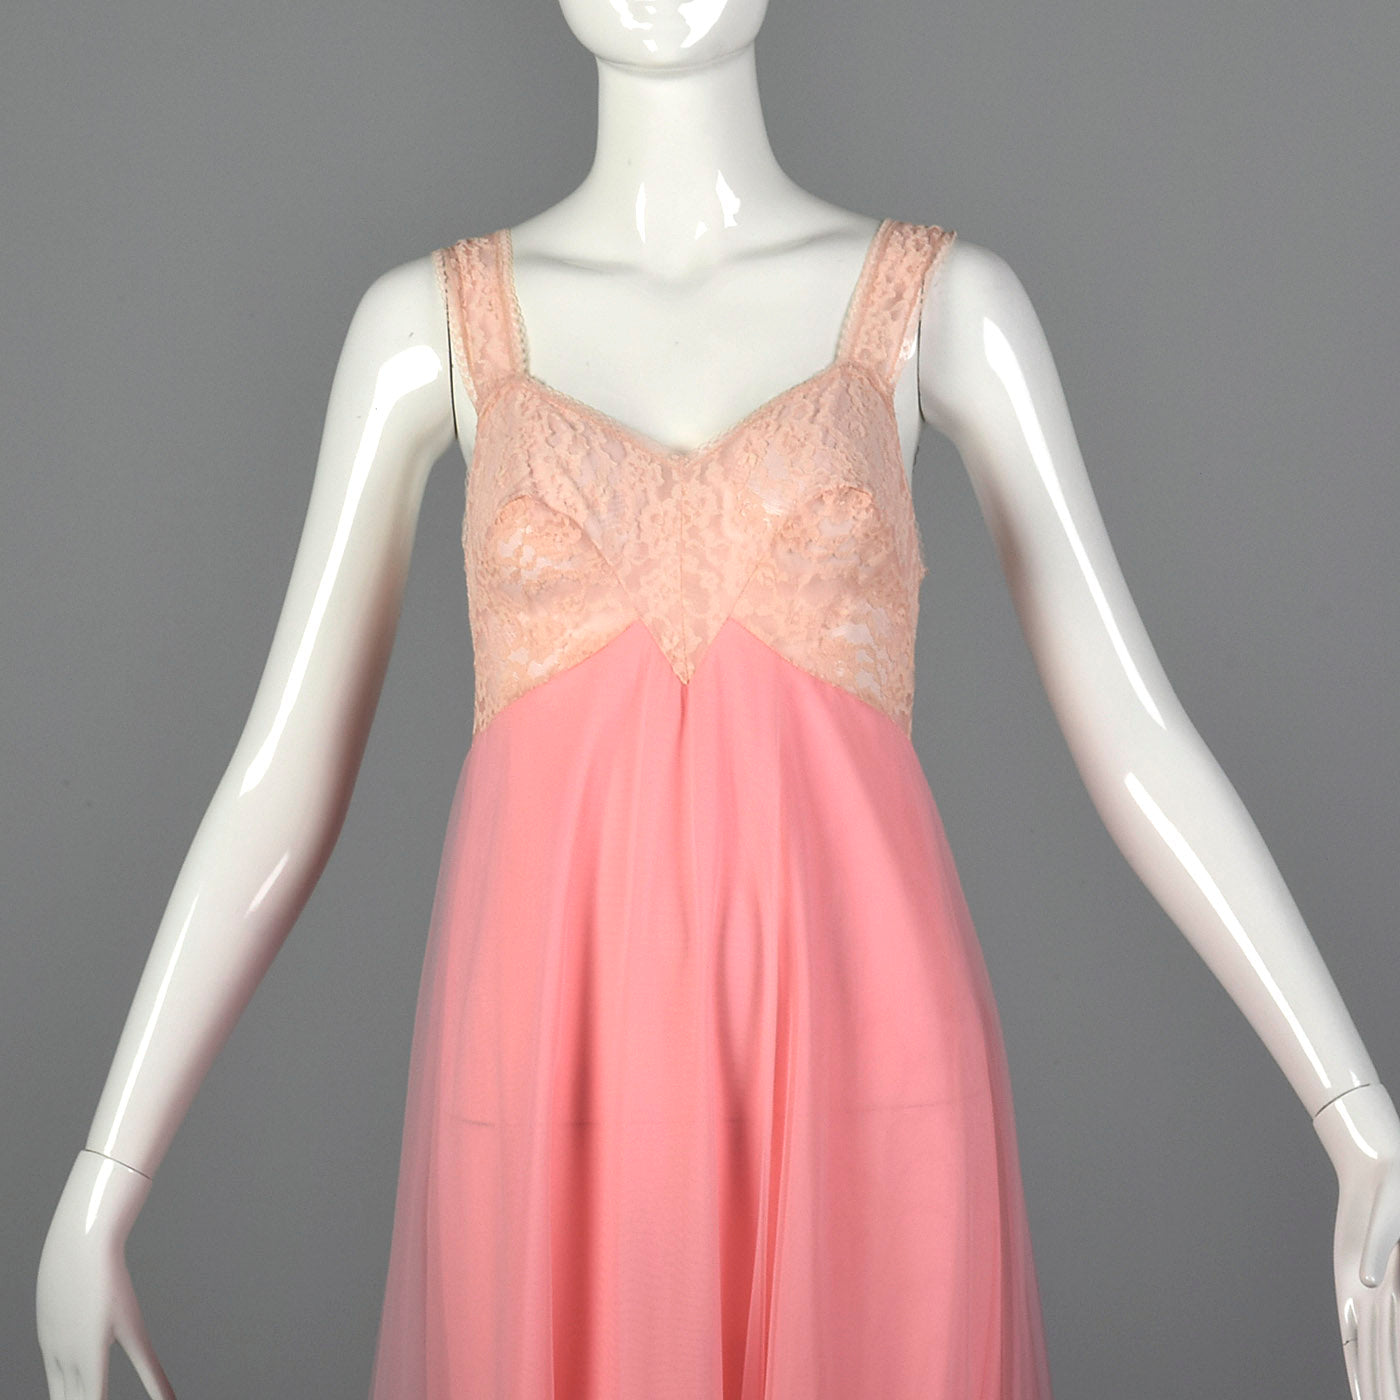 1960s Pink Nightgown with Shaped Lace Bust